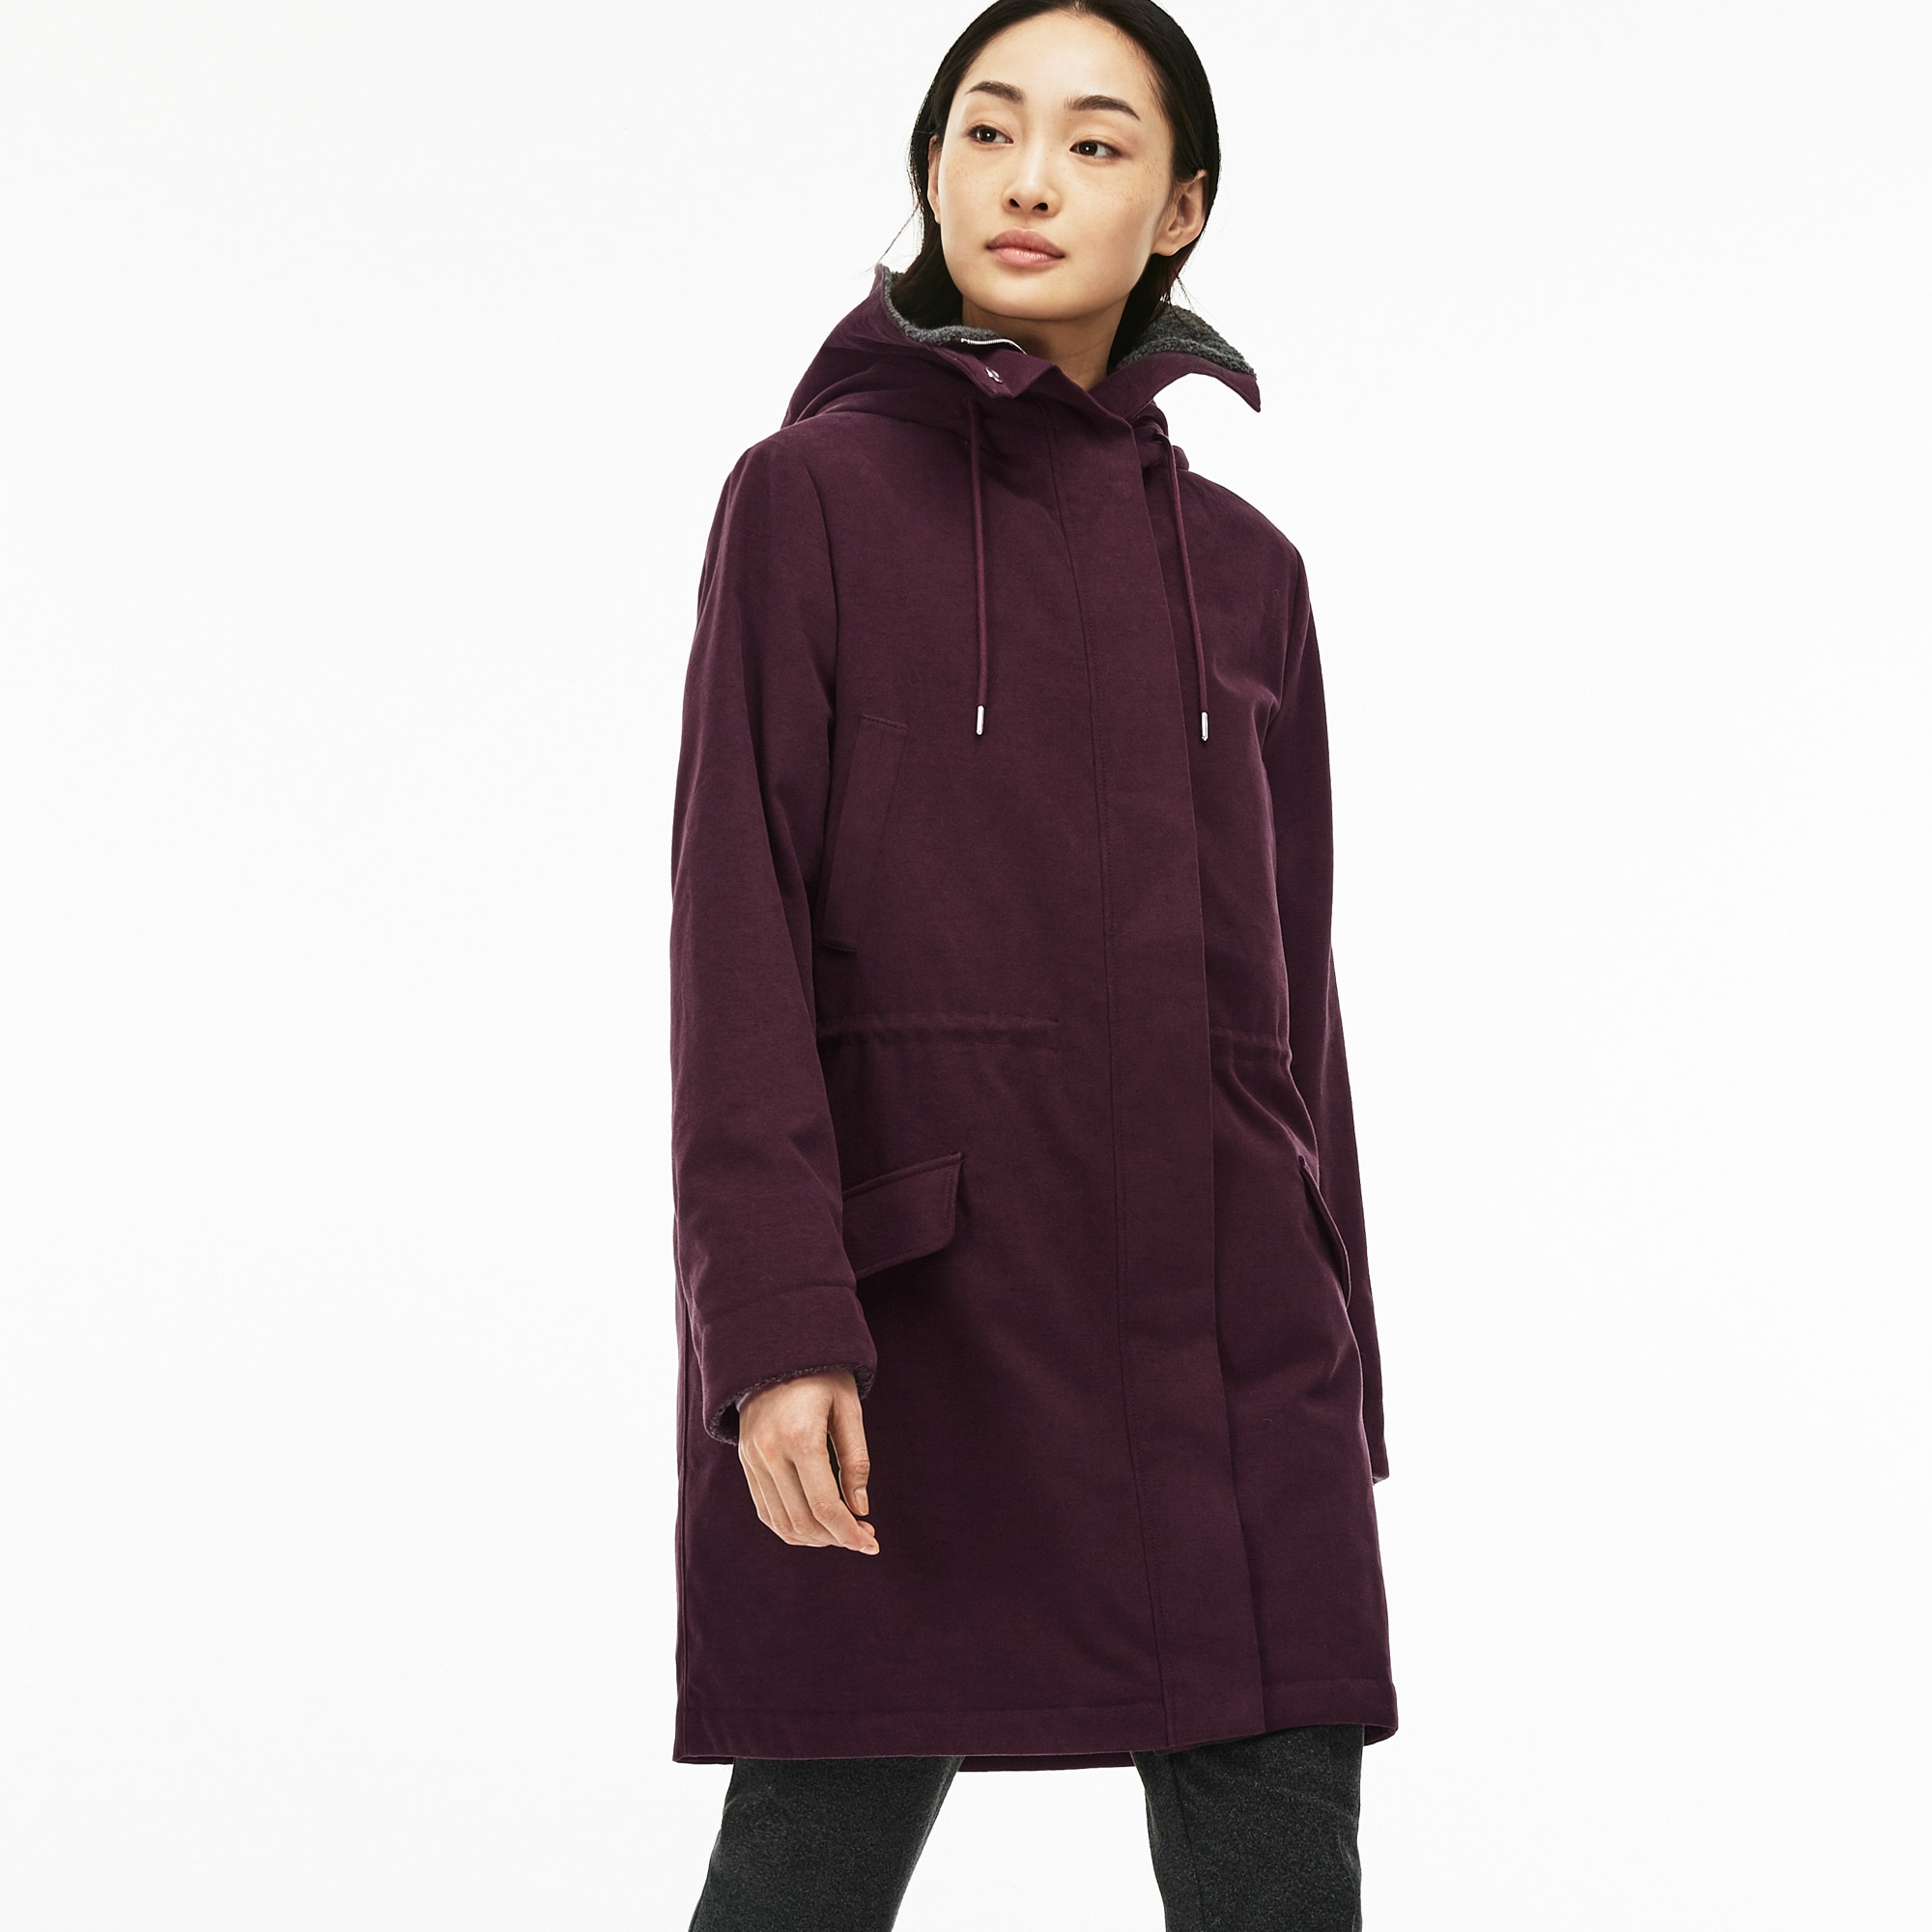 Women's Water-Resistant Moleskin Hooded Parka